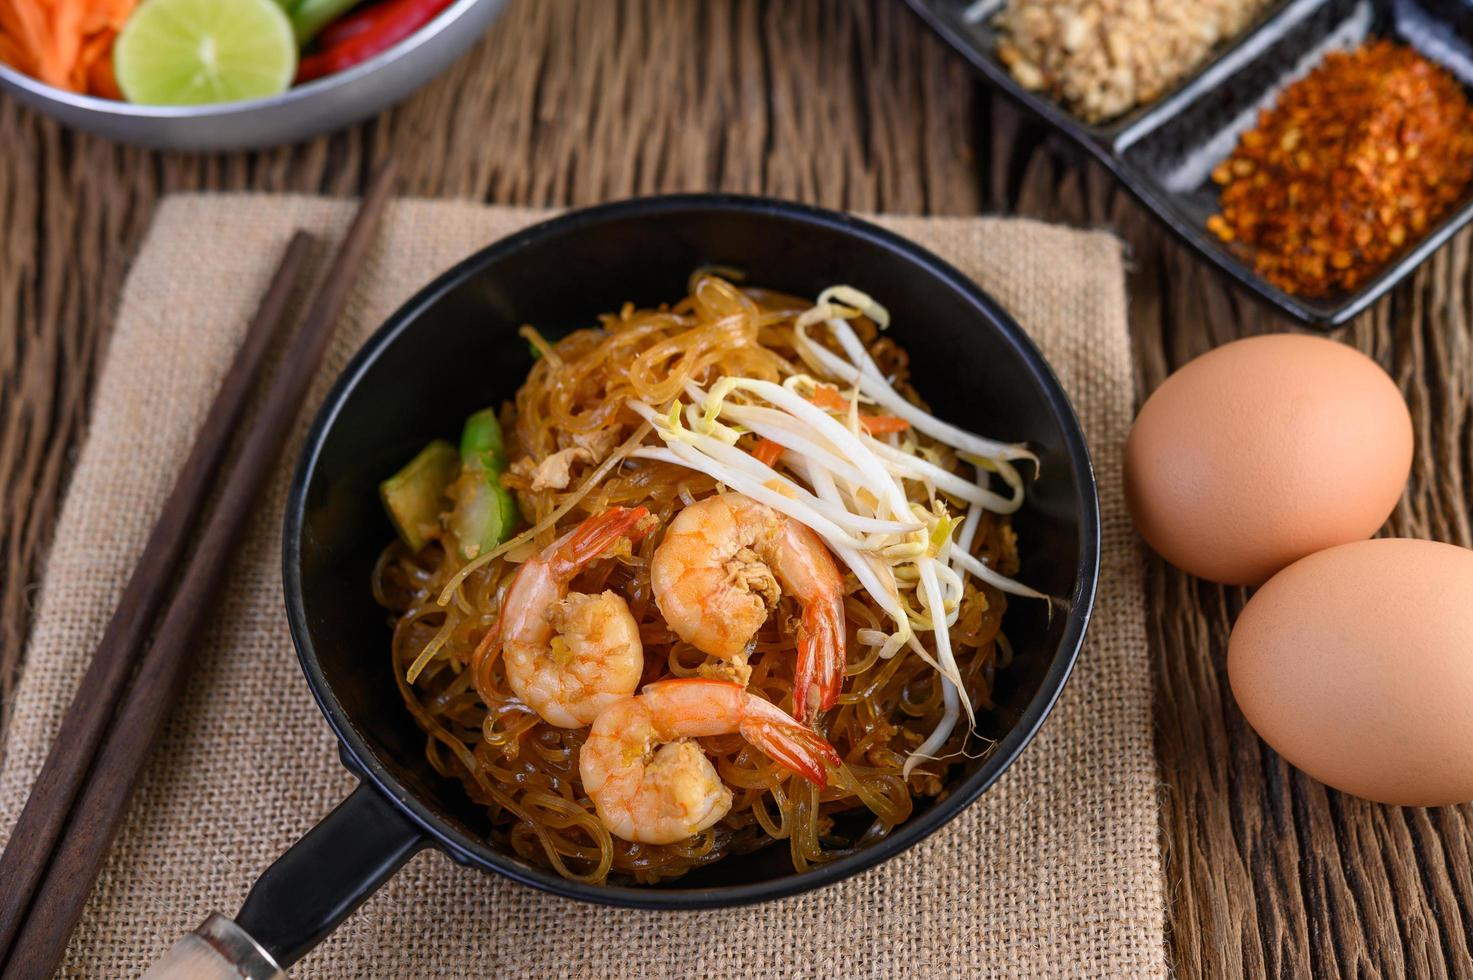 Pad thai shrimp in a black pan with eggs and seasoning photo